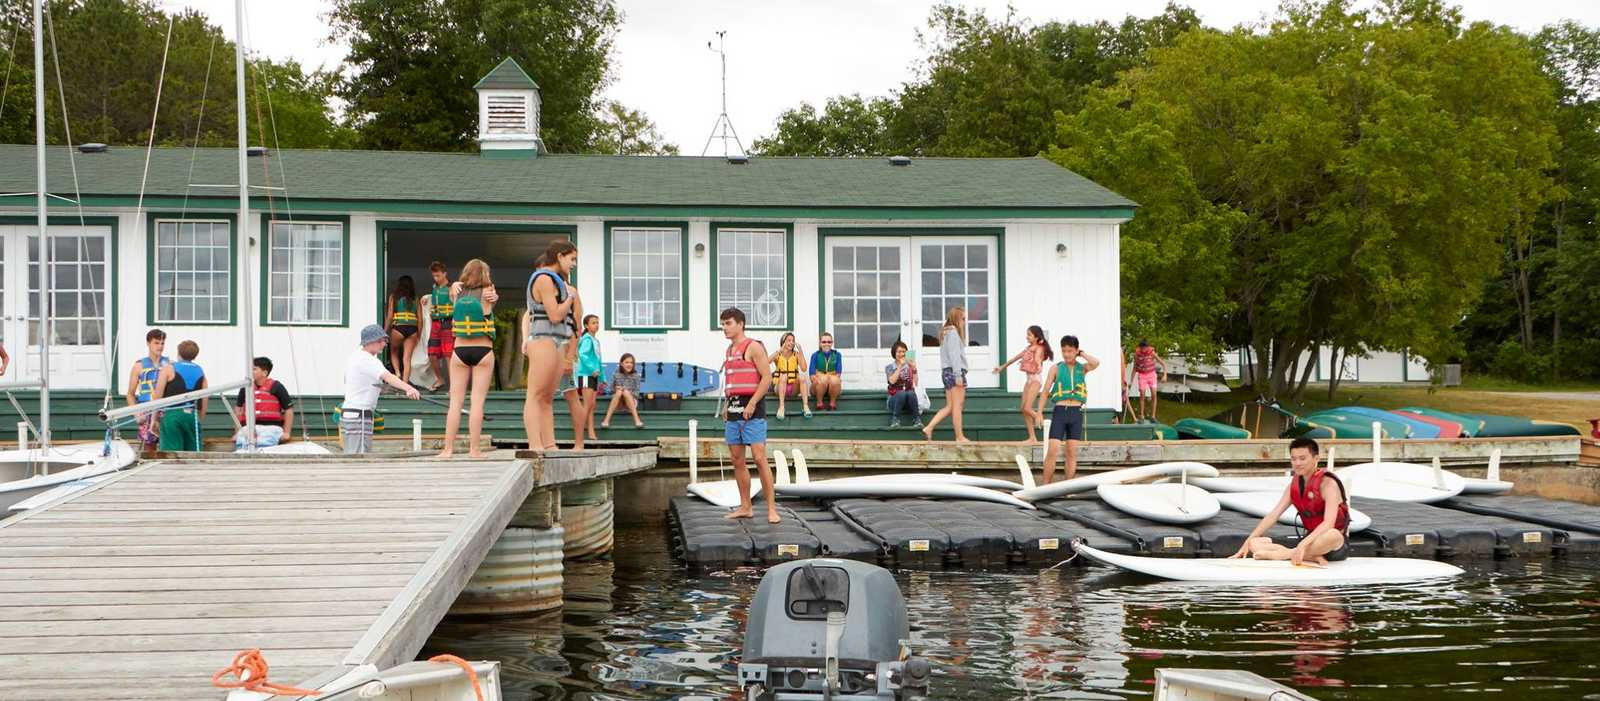 Impressionen eines Lakefield Summer Camps des Canadian International Student Services